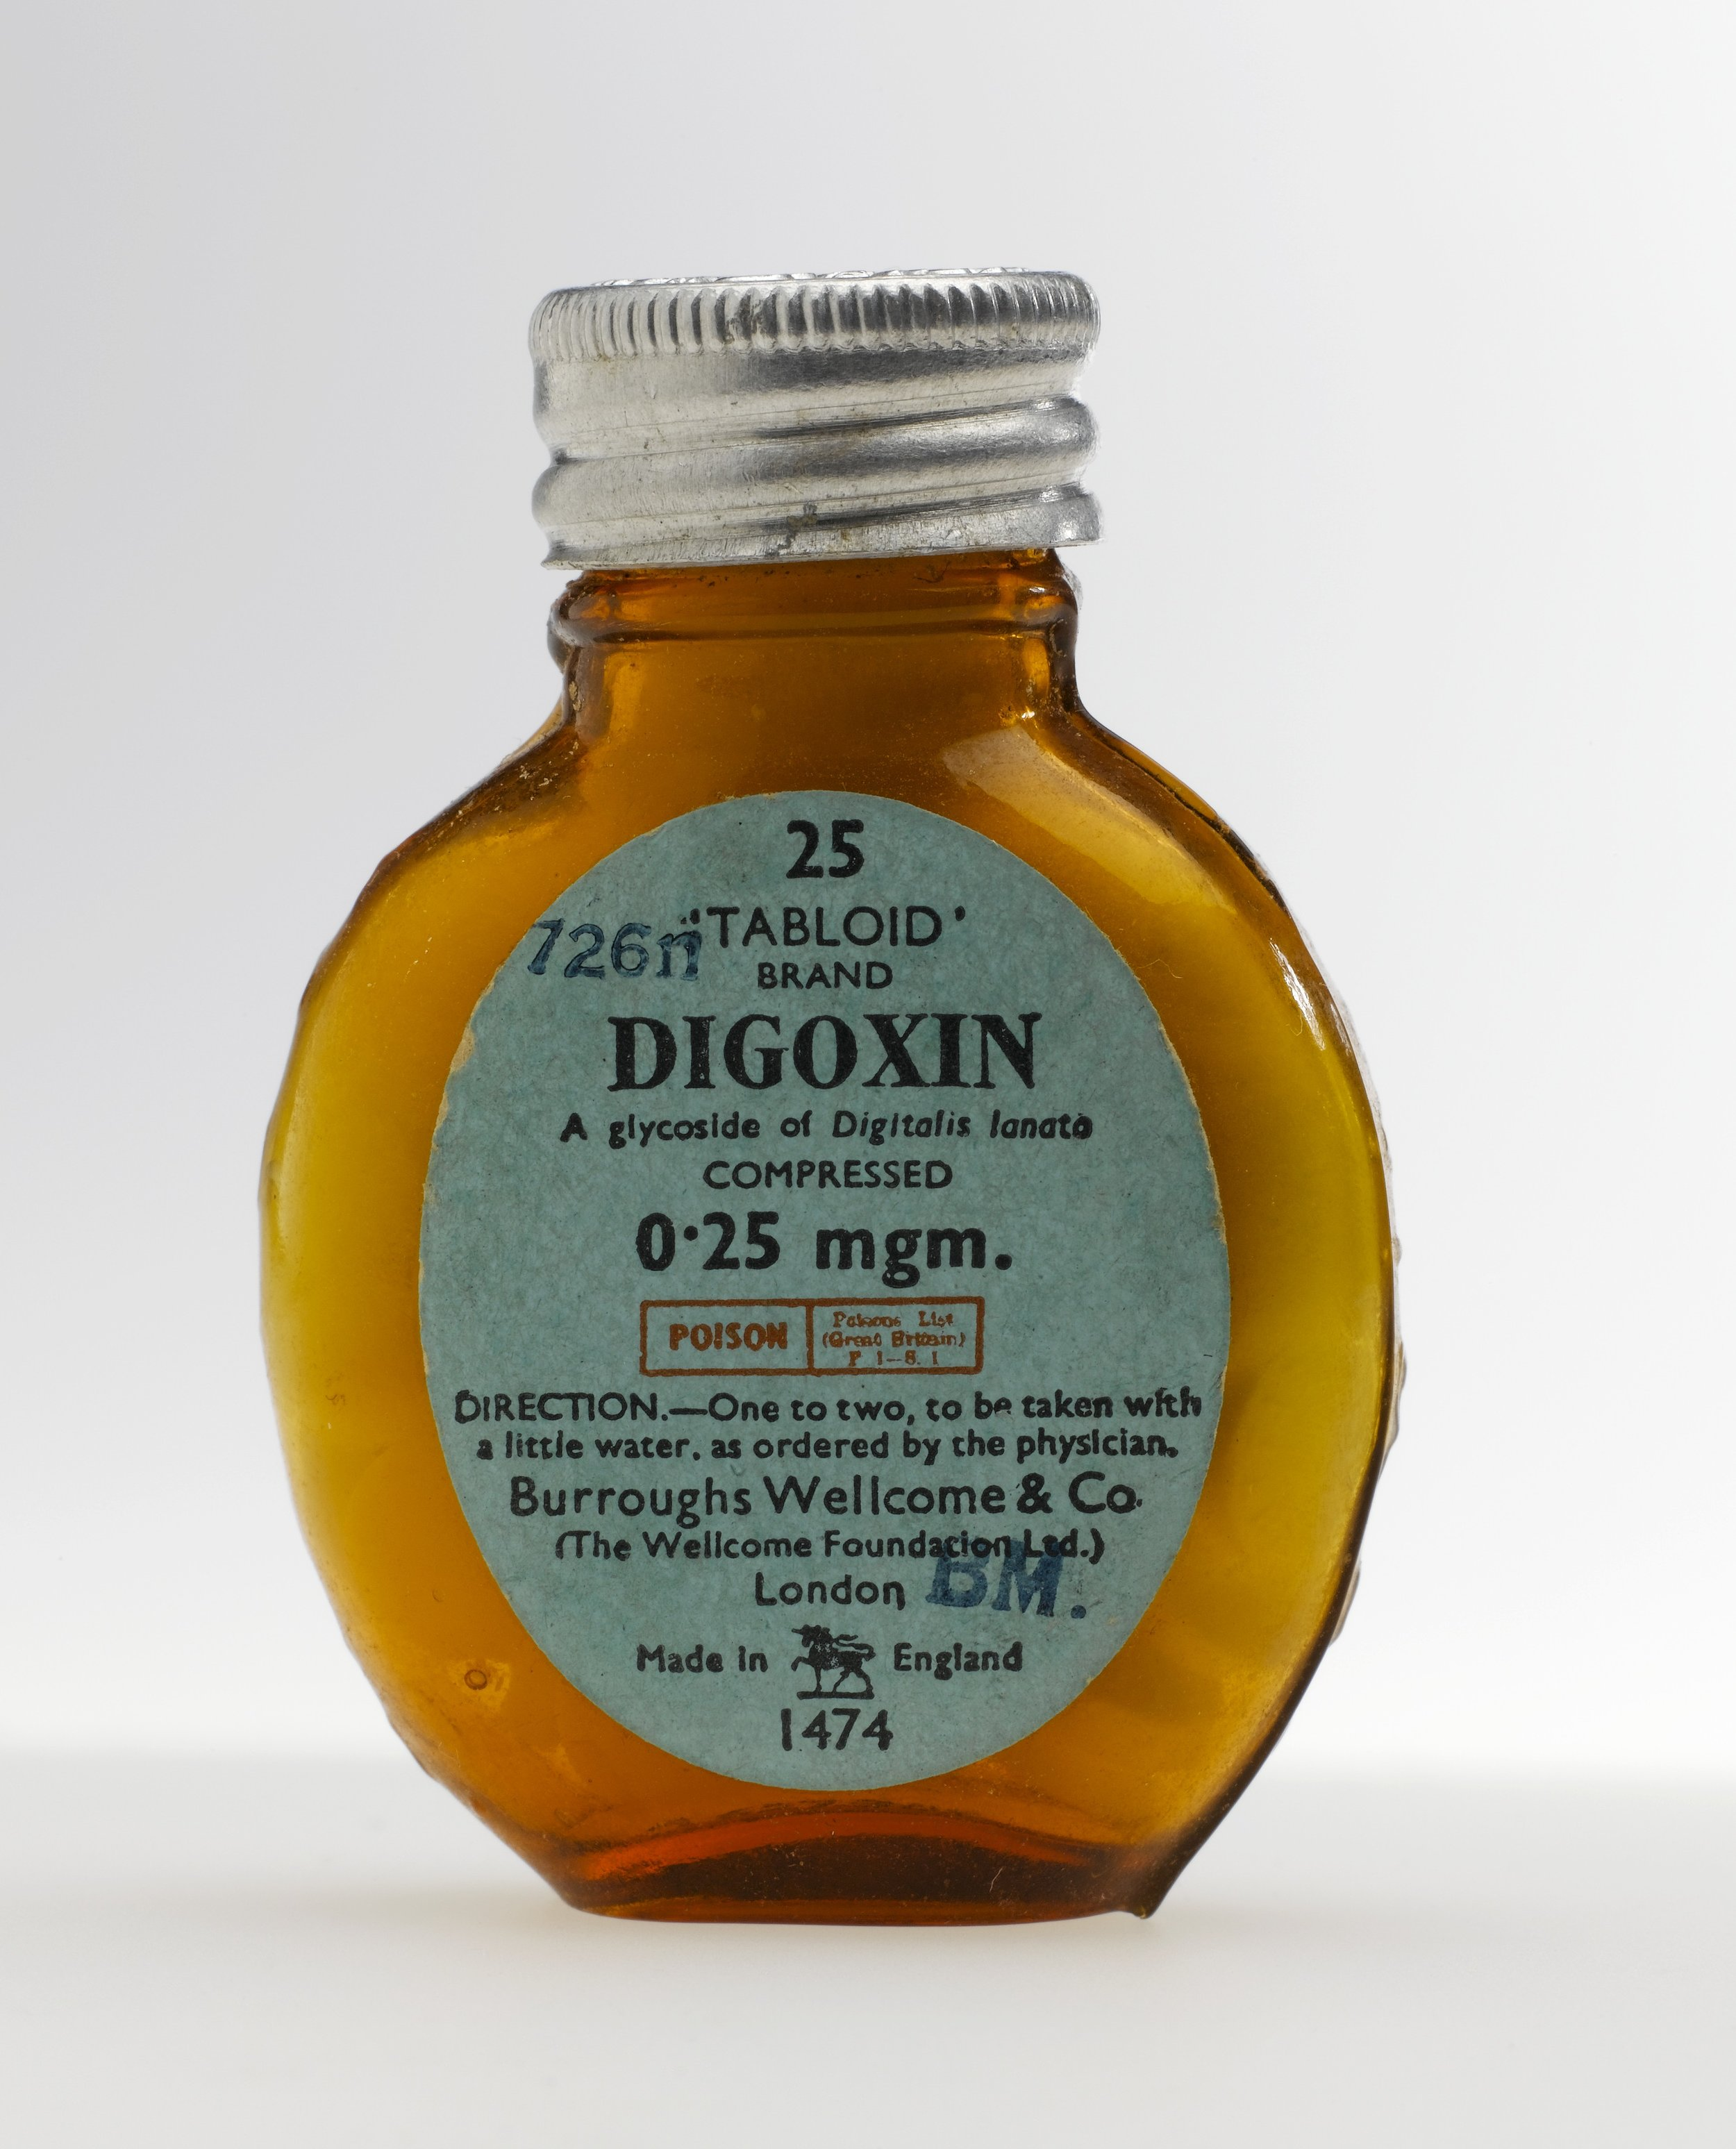 bottle-digoxin-tablets-tabloid-brand.jpg